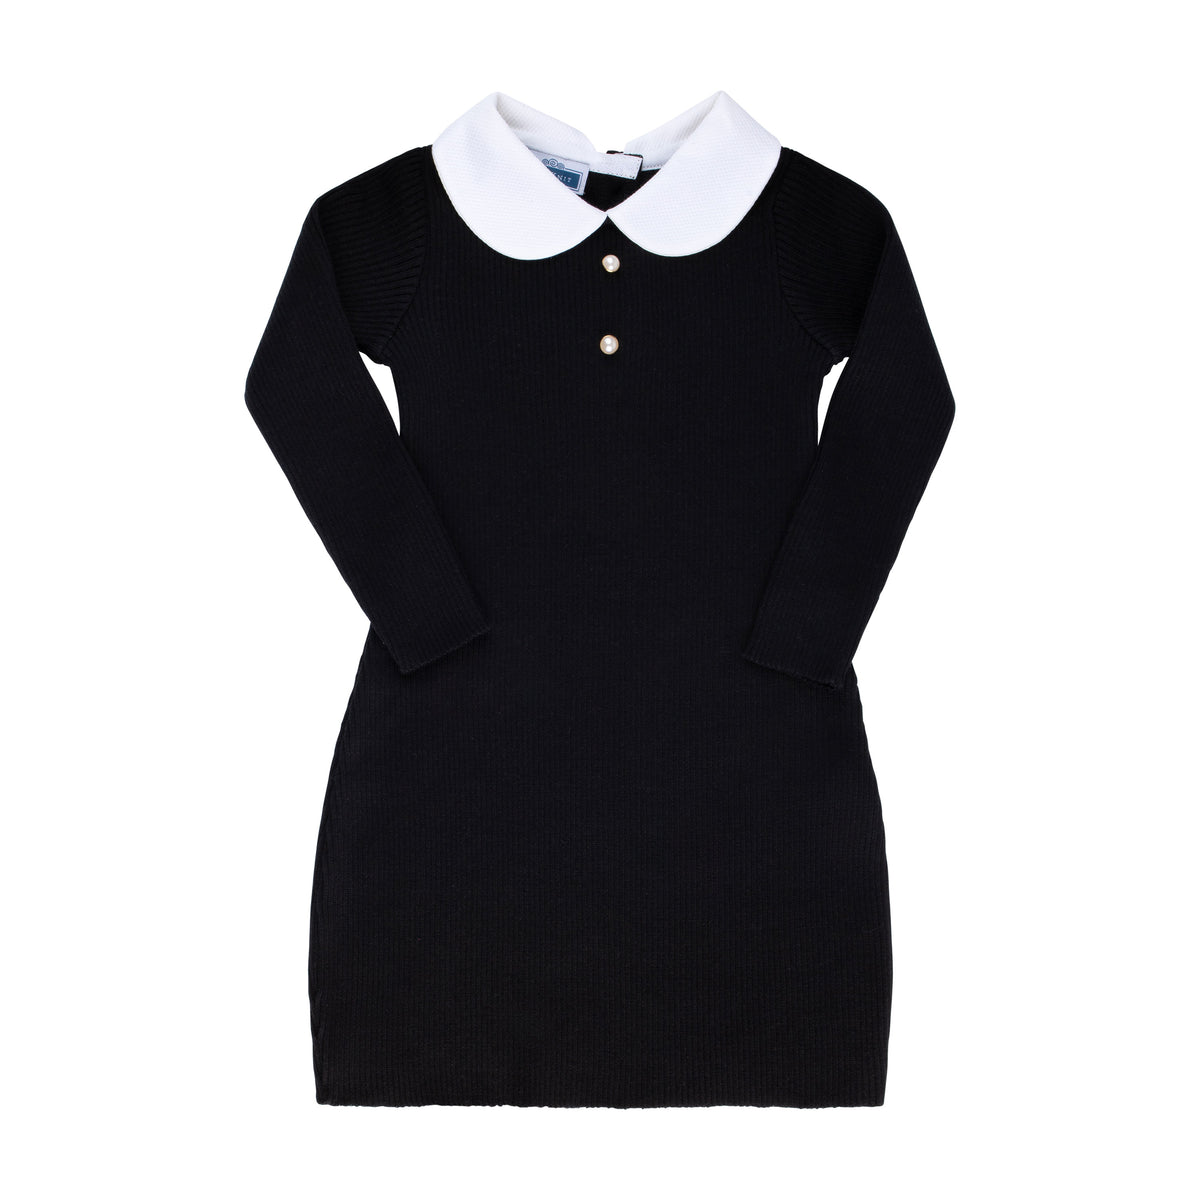 Peter Pan dress ~ Black